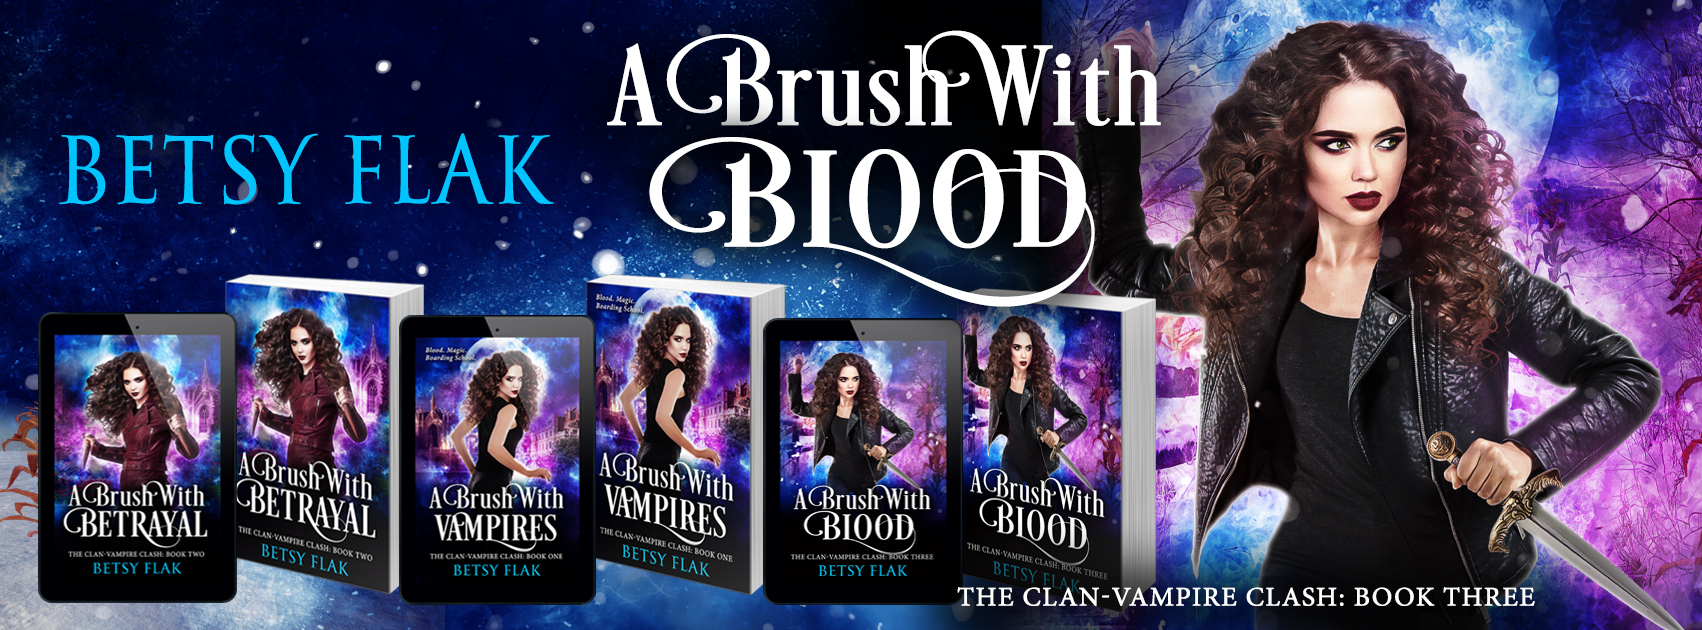 A Brush with Blood banner:  A girl with wild curly hair and blazing green eyes brandishes a wooden stake and a dagger in a snowy cornfield at night.